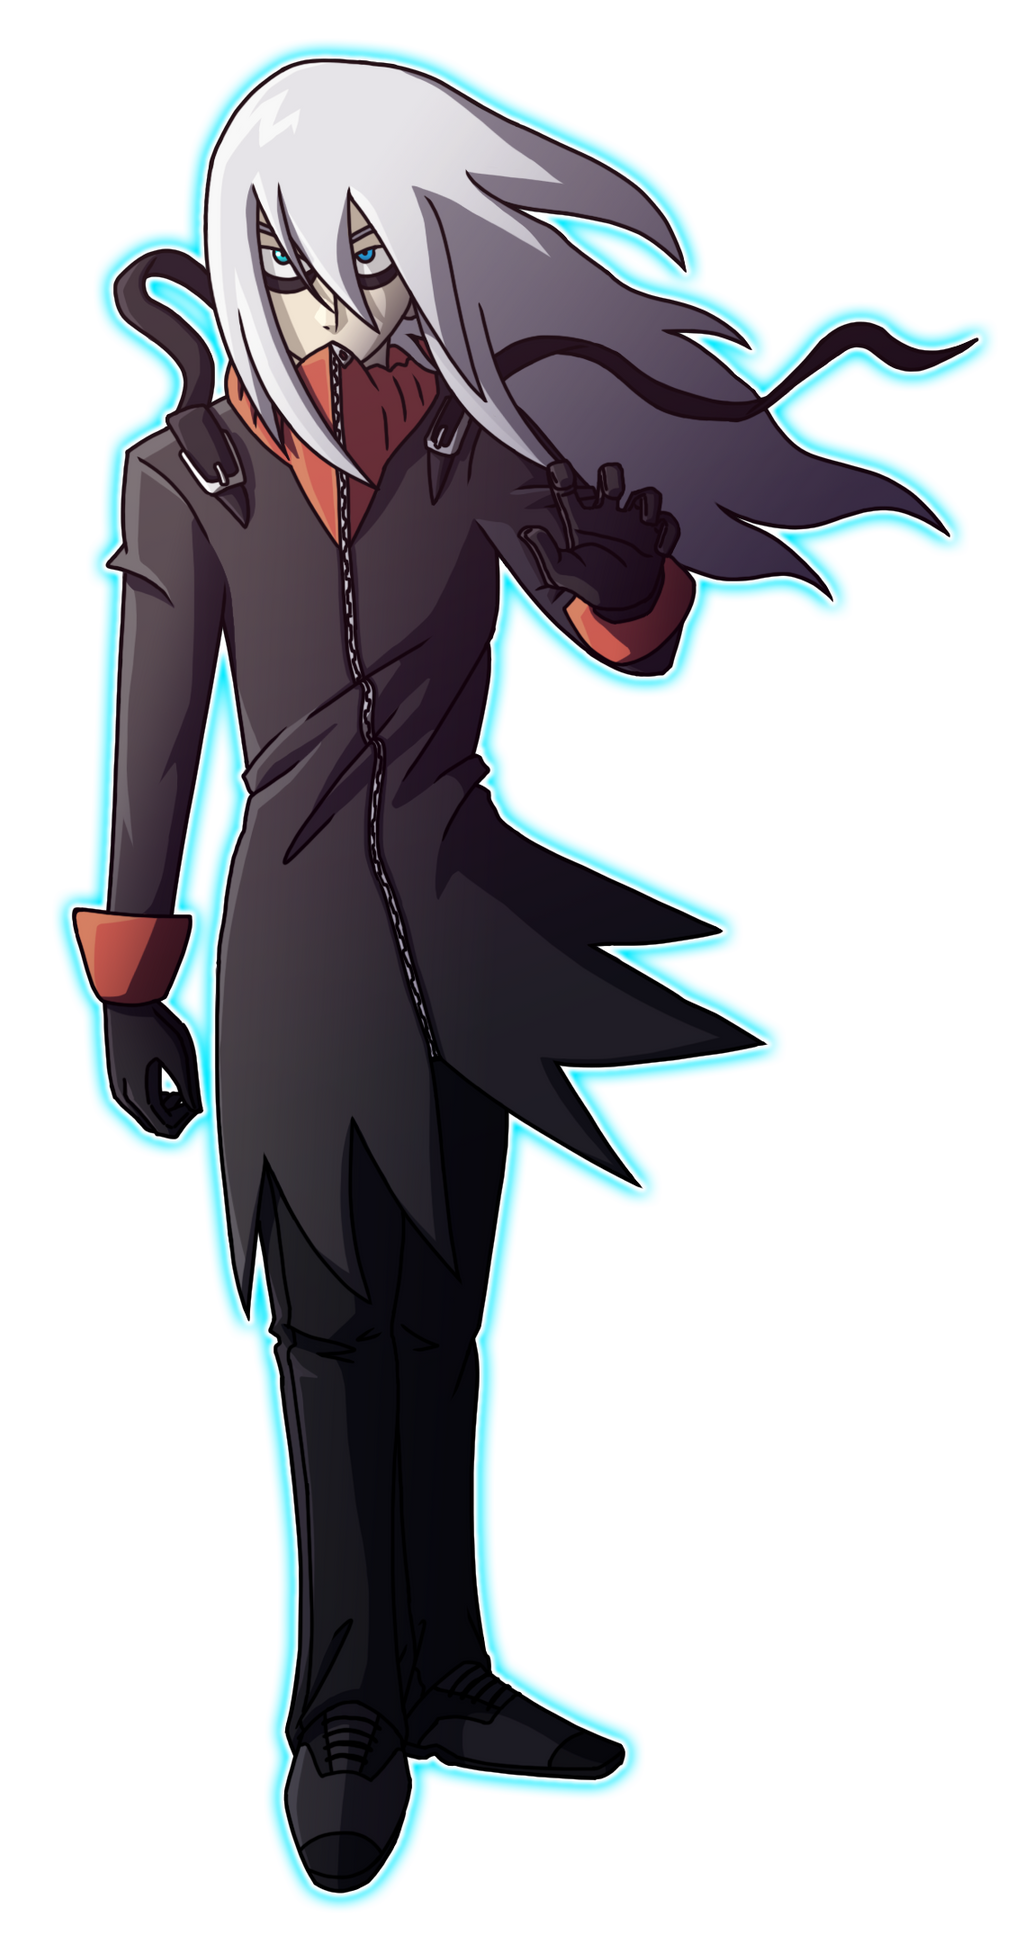 Darkrai as Human | Pokemon by PokemonConcepts on DeviantArt